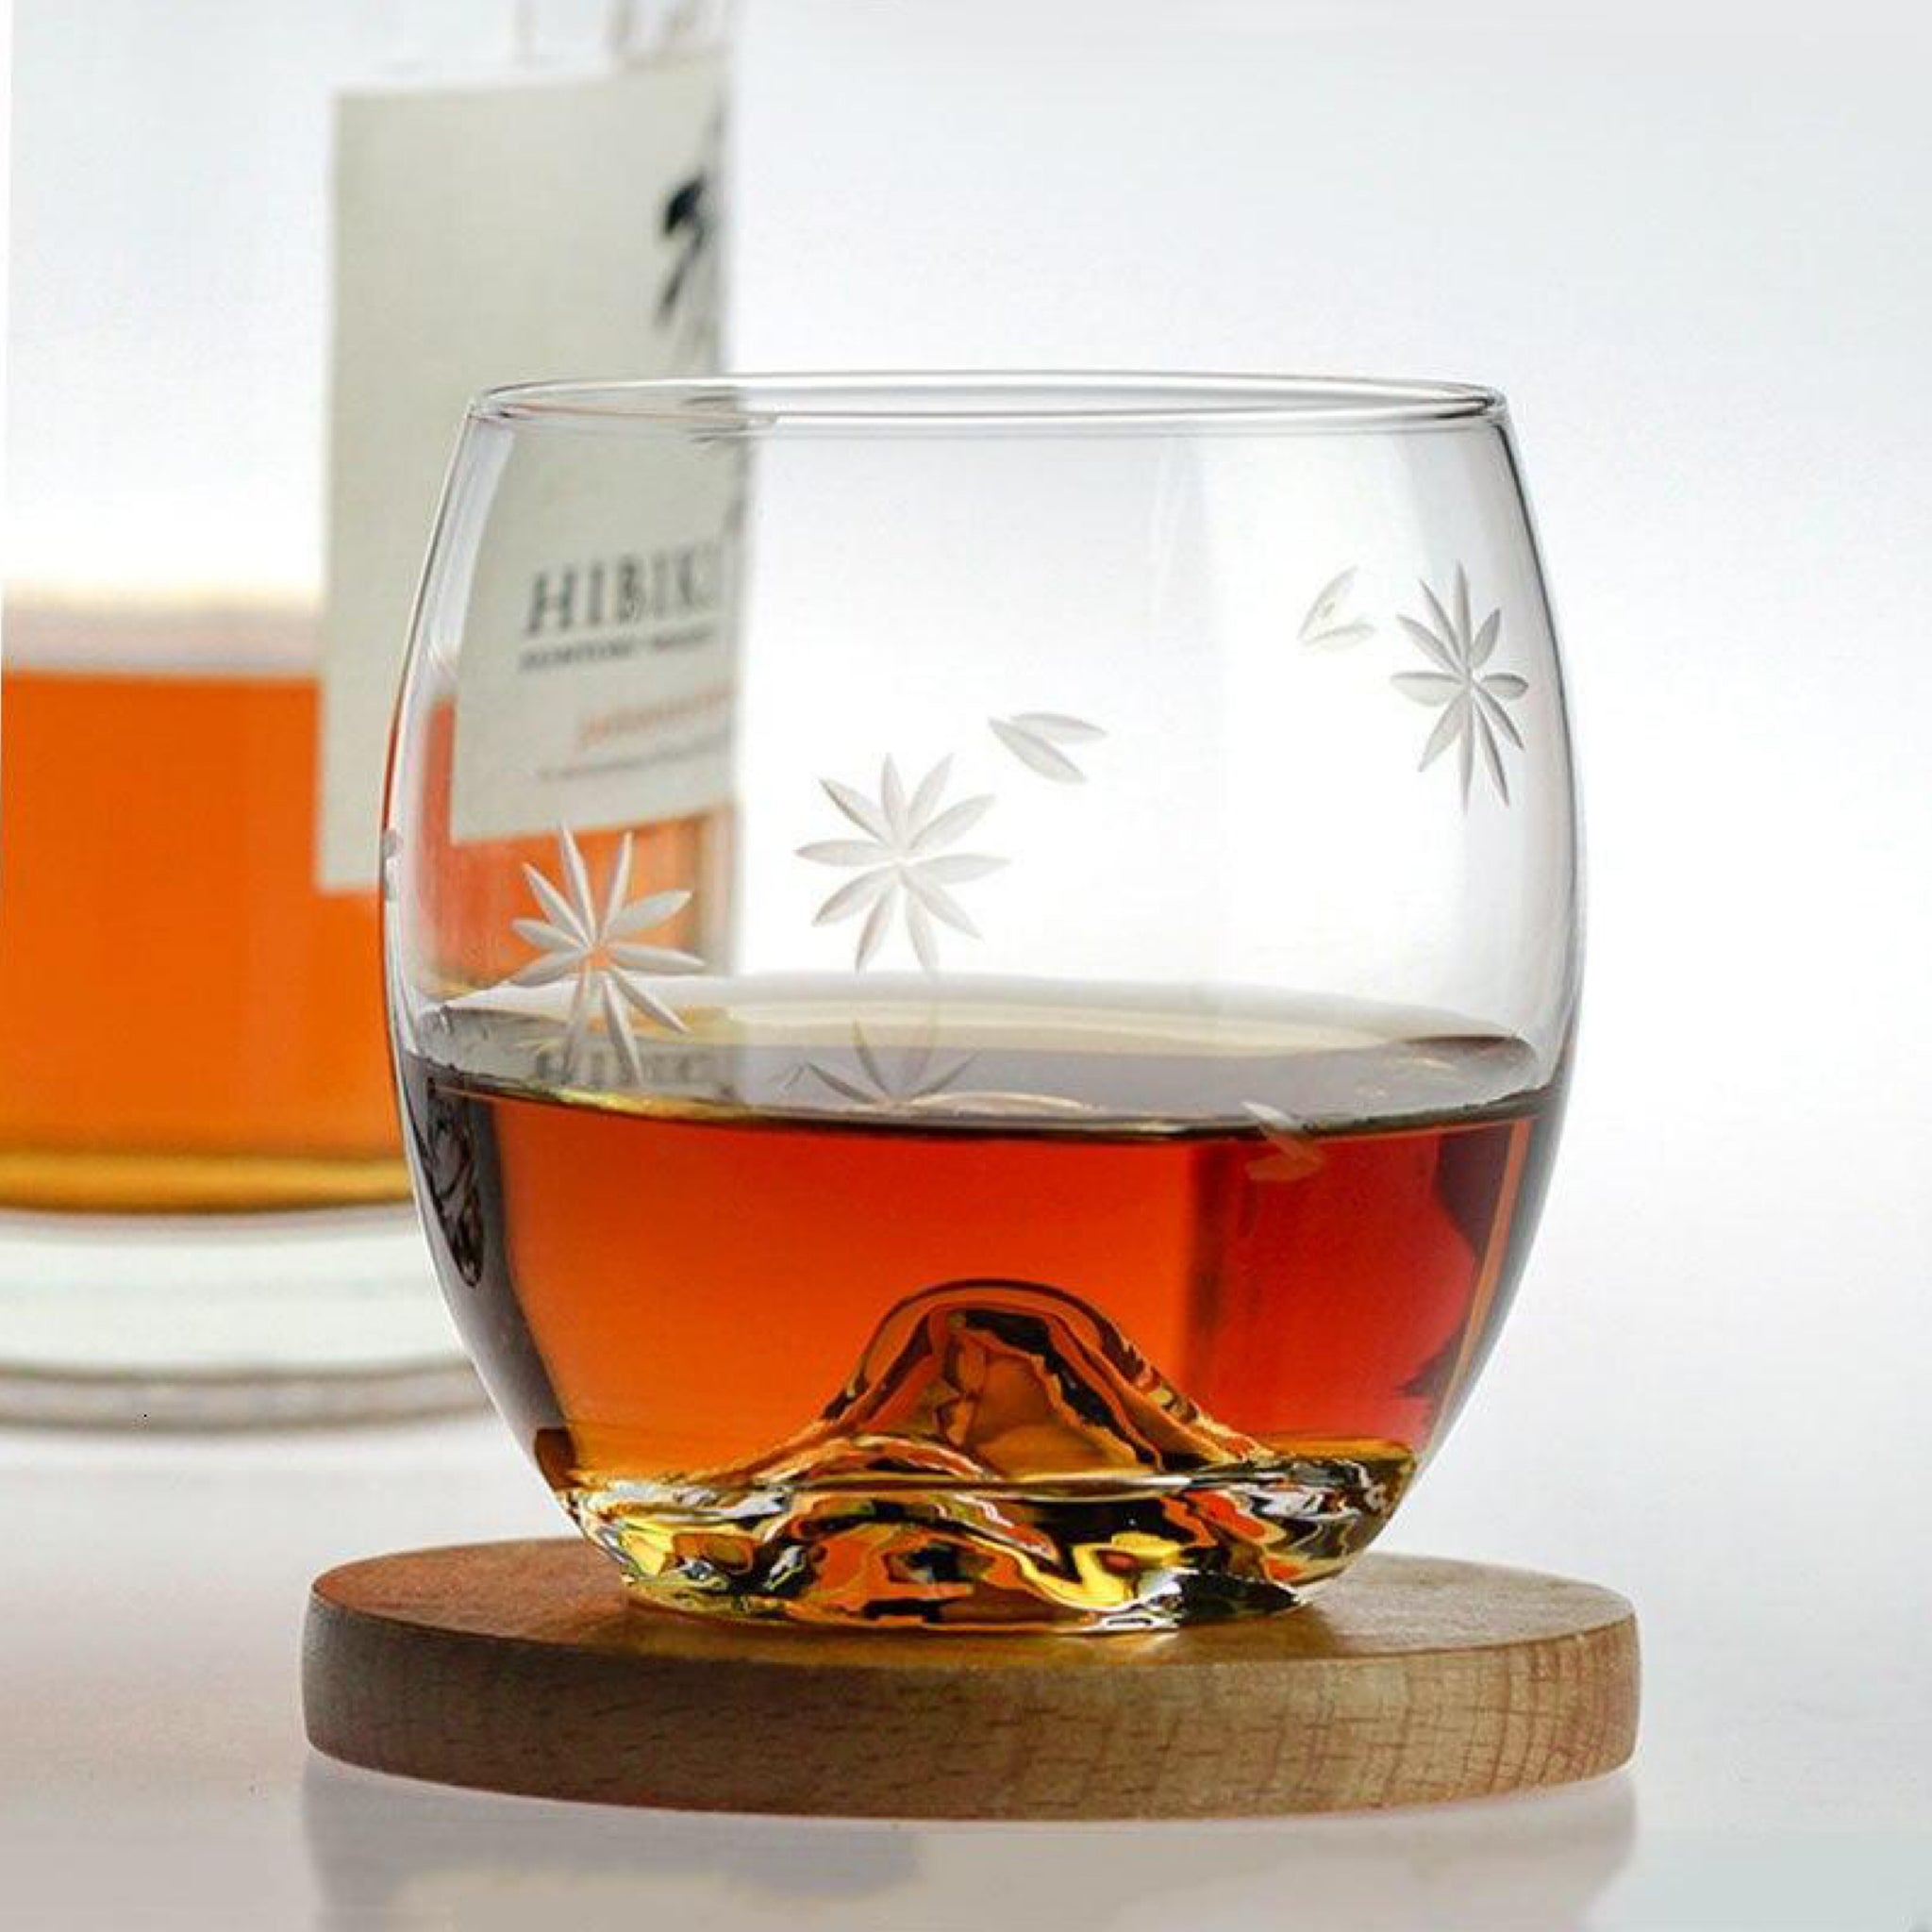 Japanese Mt. Fuji Whisky Glass Cup Ice Flower Design Transparent Lead-free Crystal Creative Brandy Rum Liquor Beer Glasses Japan Glassware Drinkware Trendy